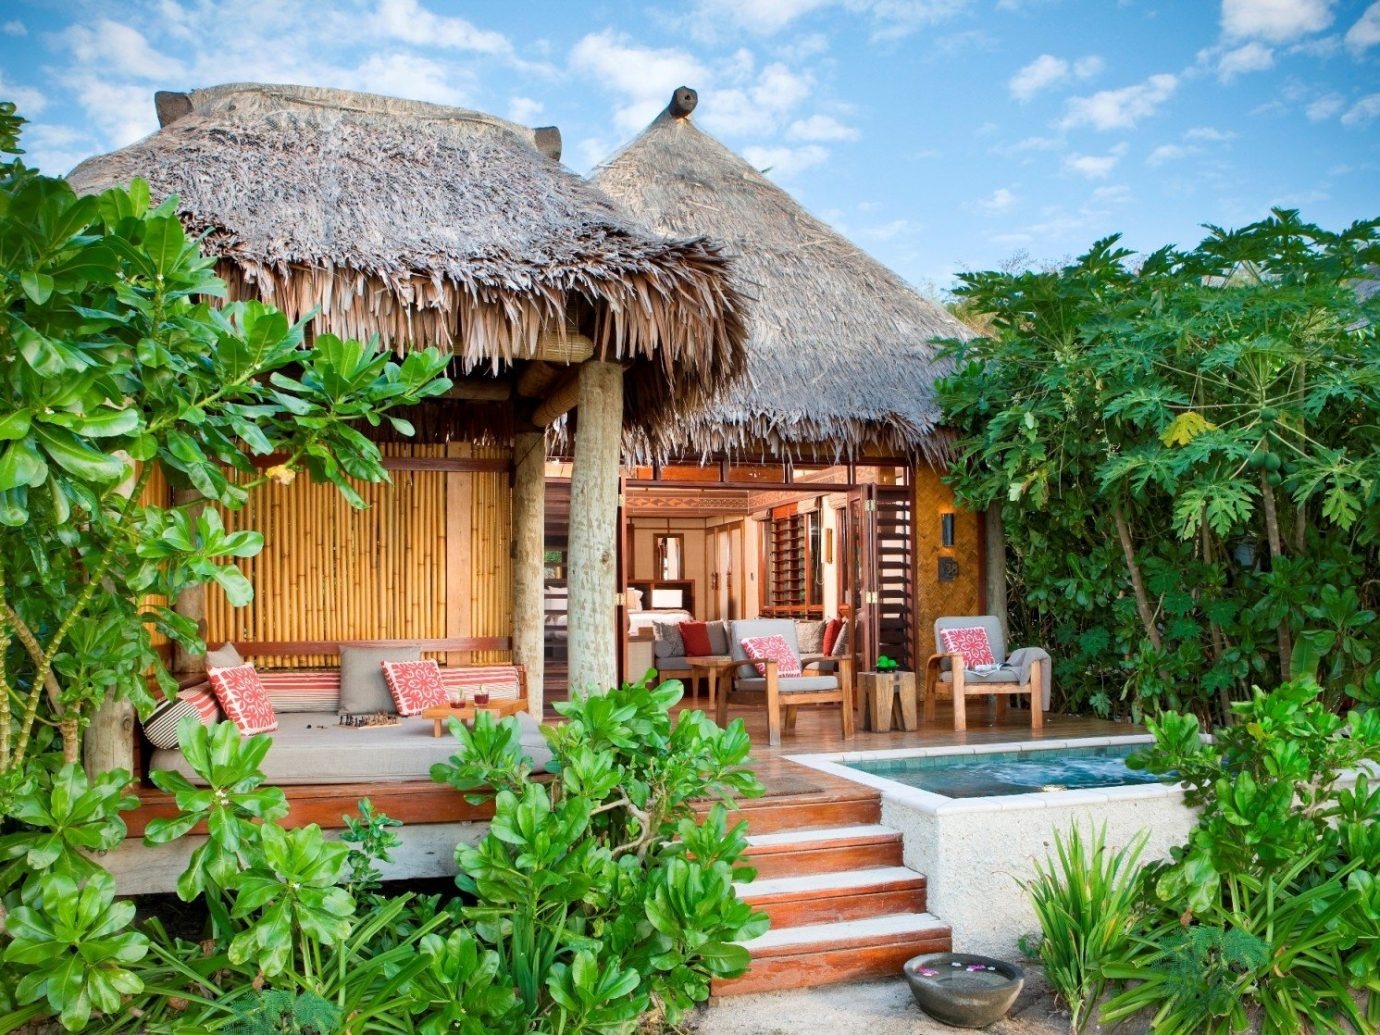 All-Inclusive Resorts Hotels Luxury Travel outdoor tree property Resort hut cottage real estate thatching hacienda eco hotel plant home estate outdoor structure Jungle arecales house Villa Garden leisure roof bushes area stone surrounded